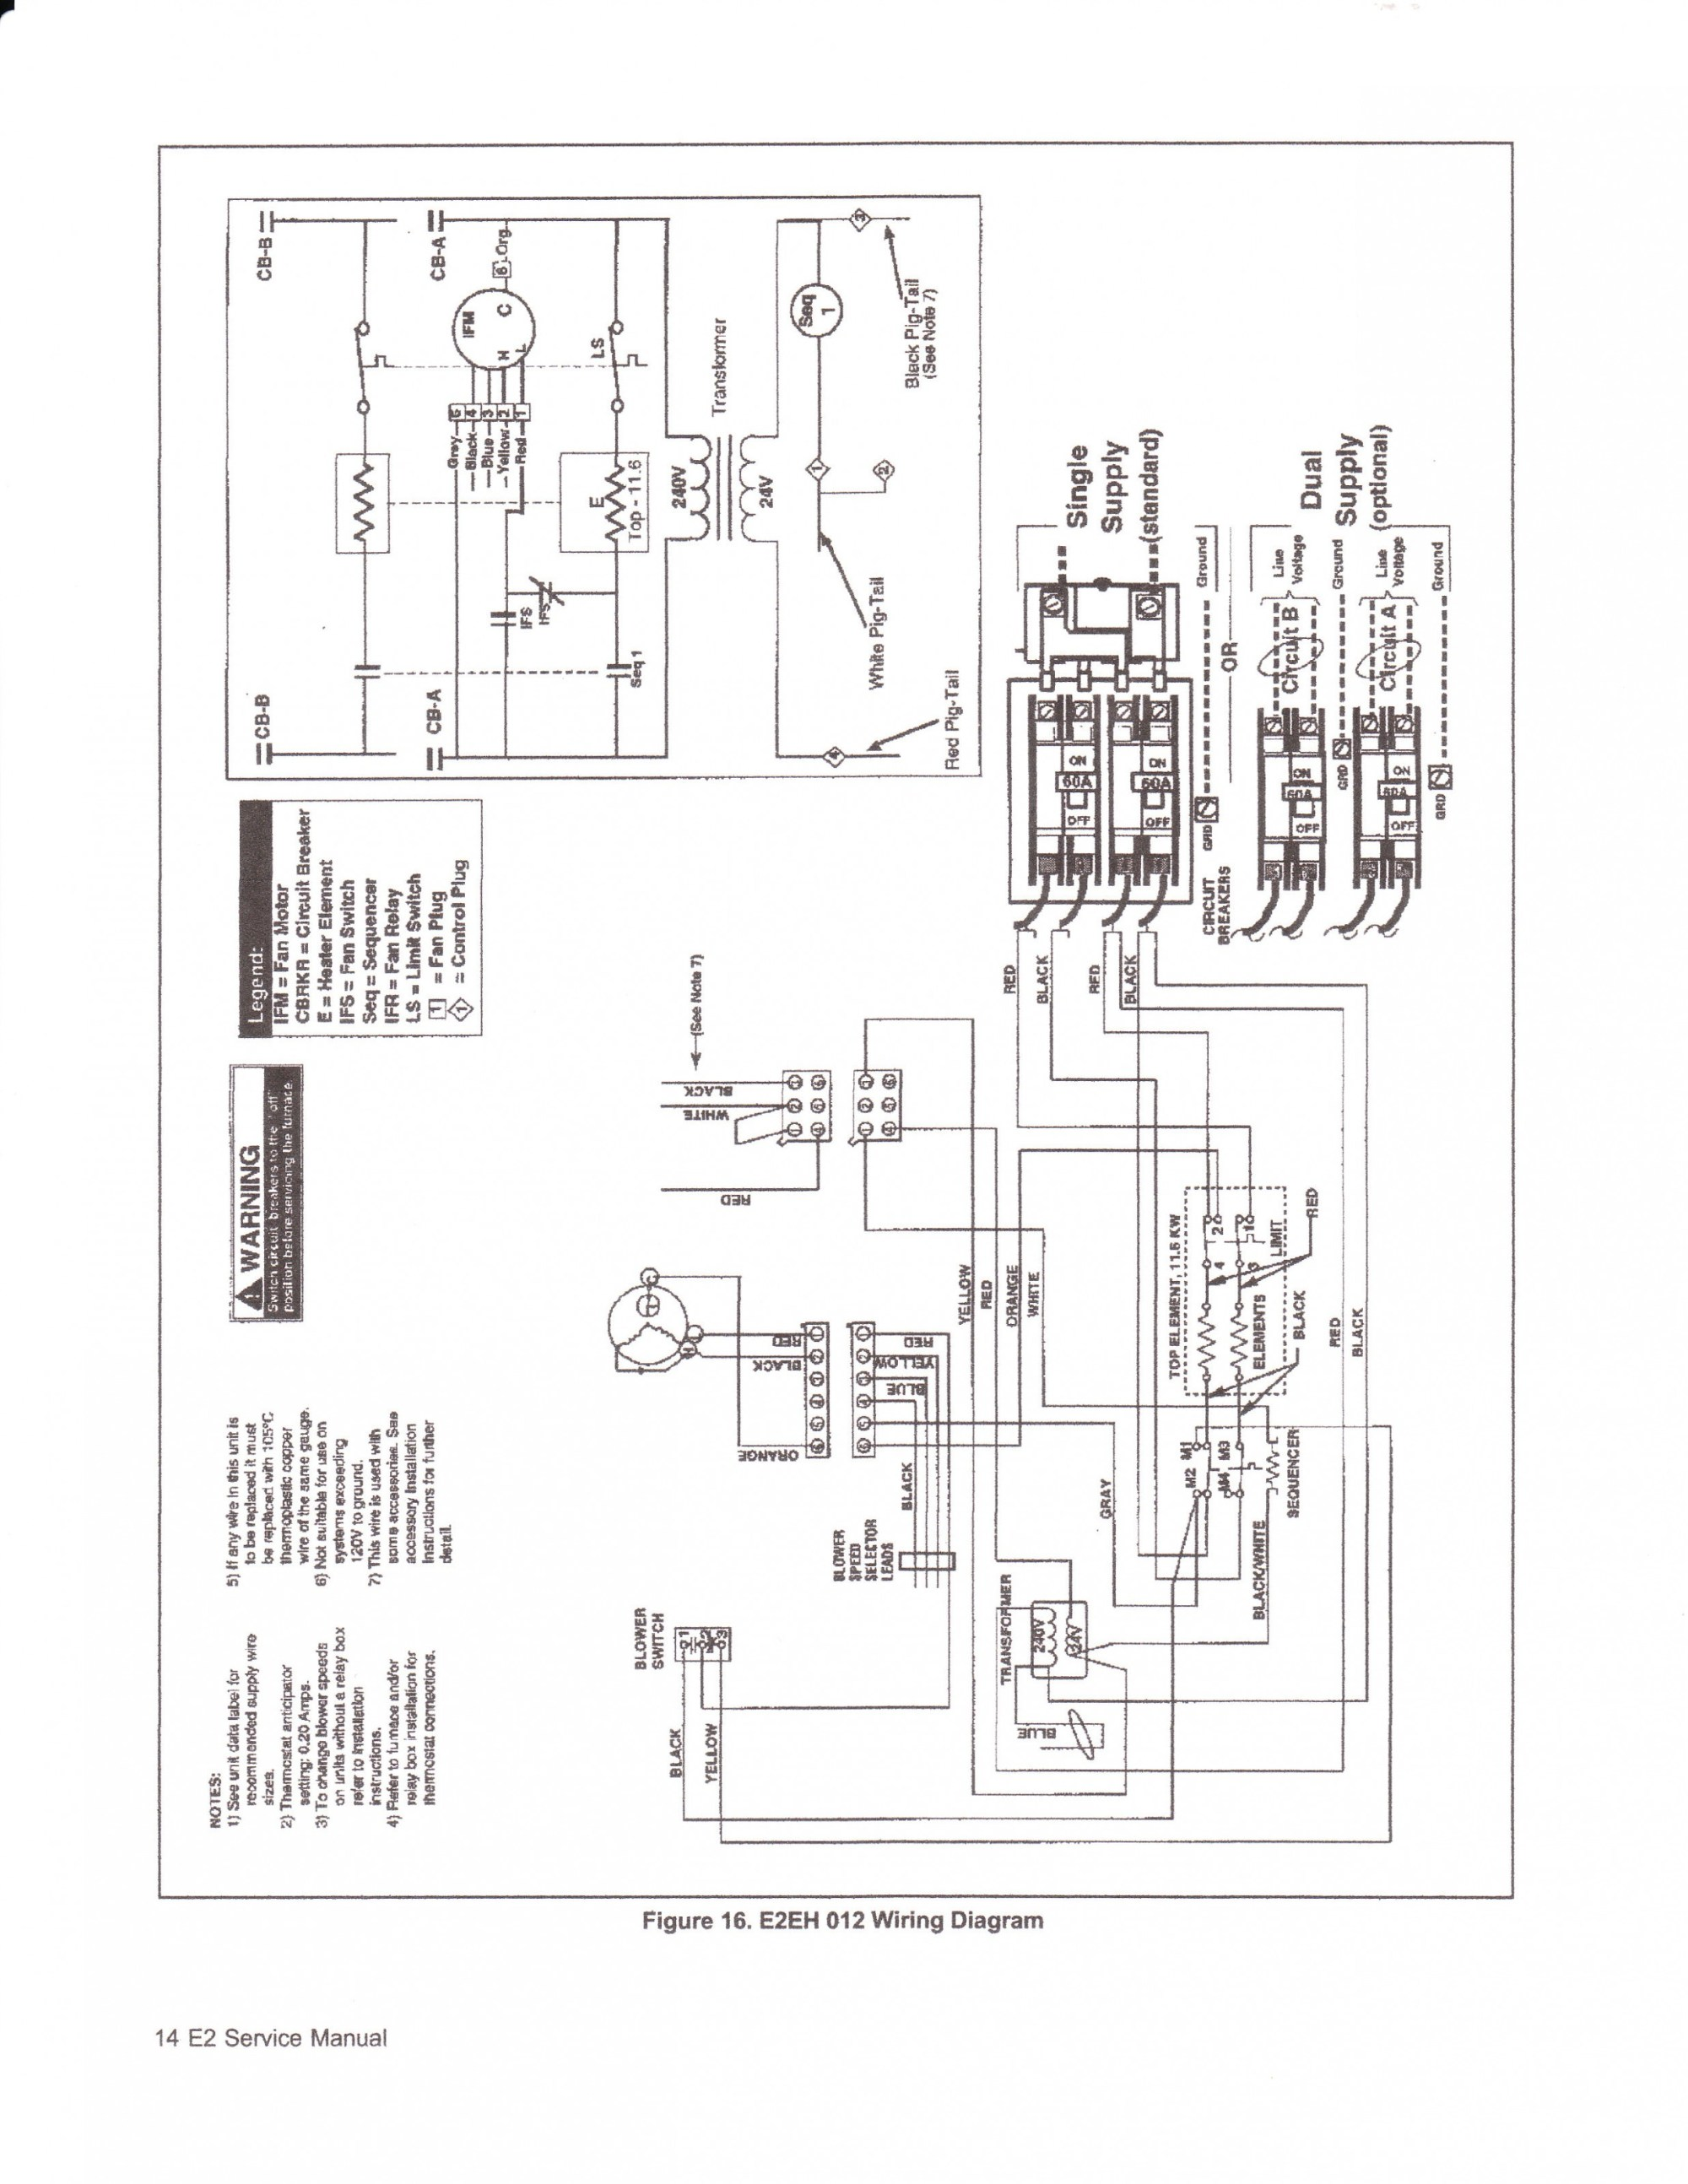 hight resolution of 3500a816 wiring diagram index listing of wiring diagrams evcon